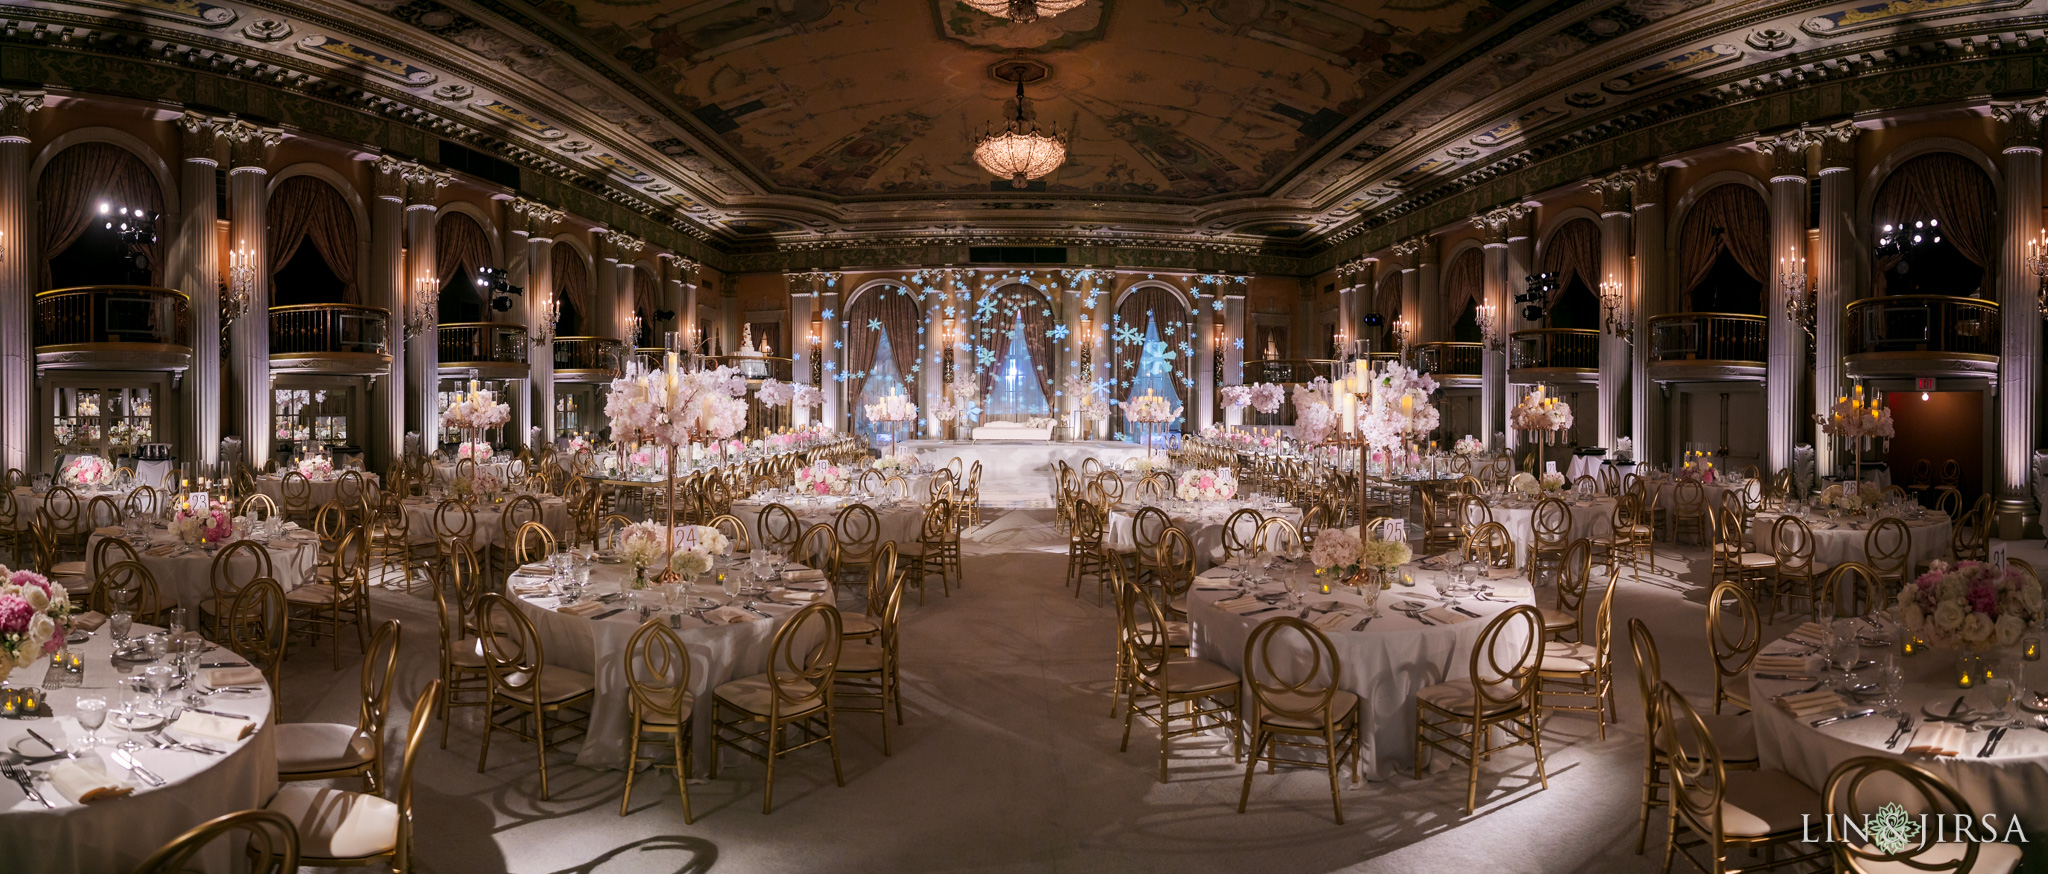 47 Millennium Biltmore Hotel Los Angeles Indian Wedding Reception Photography